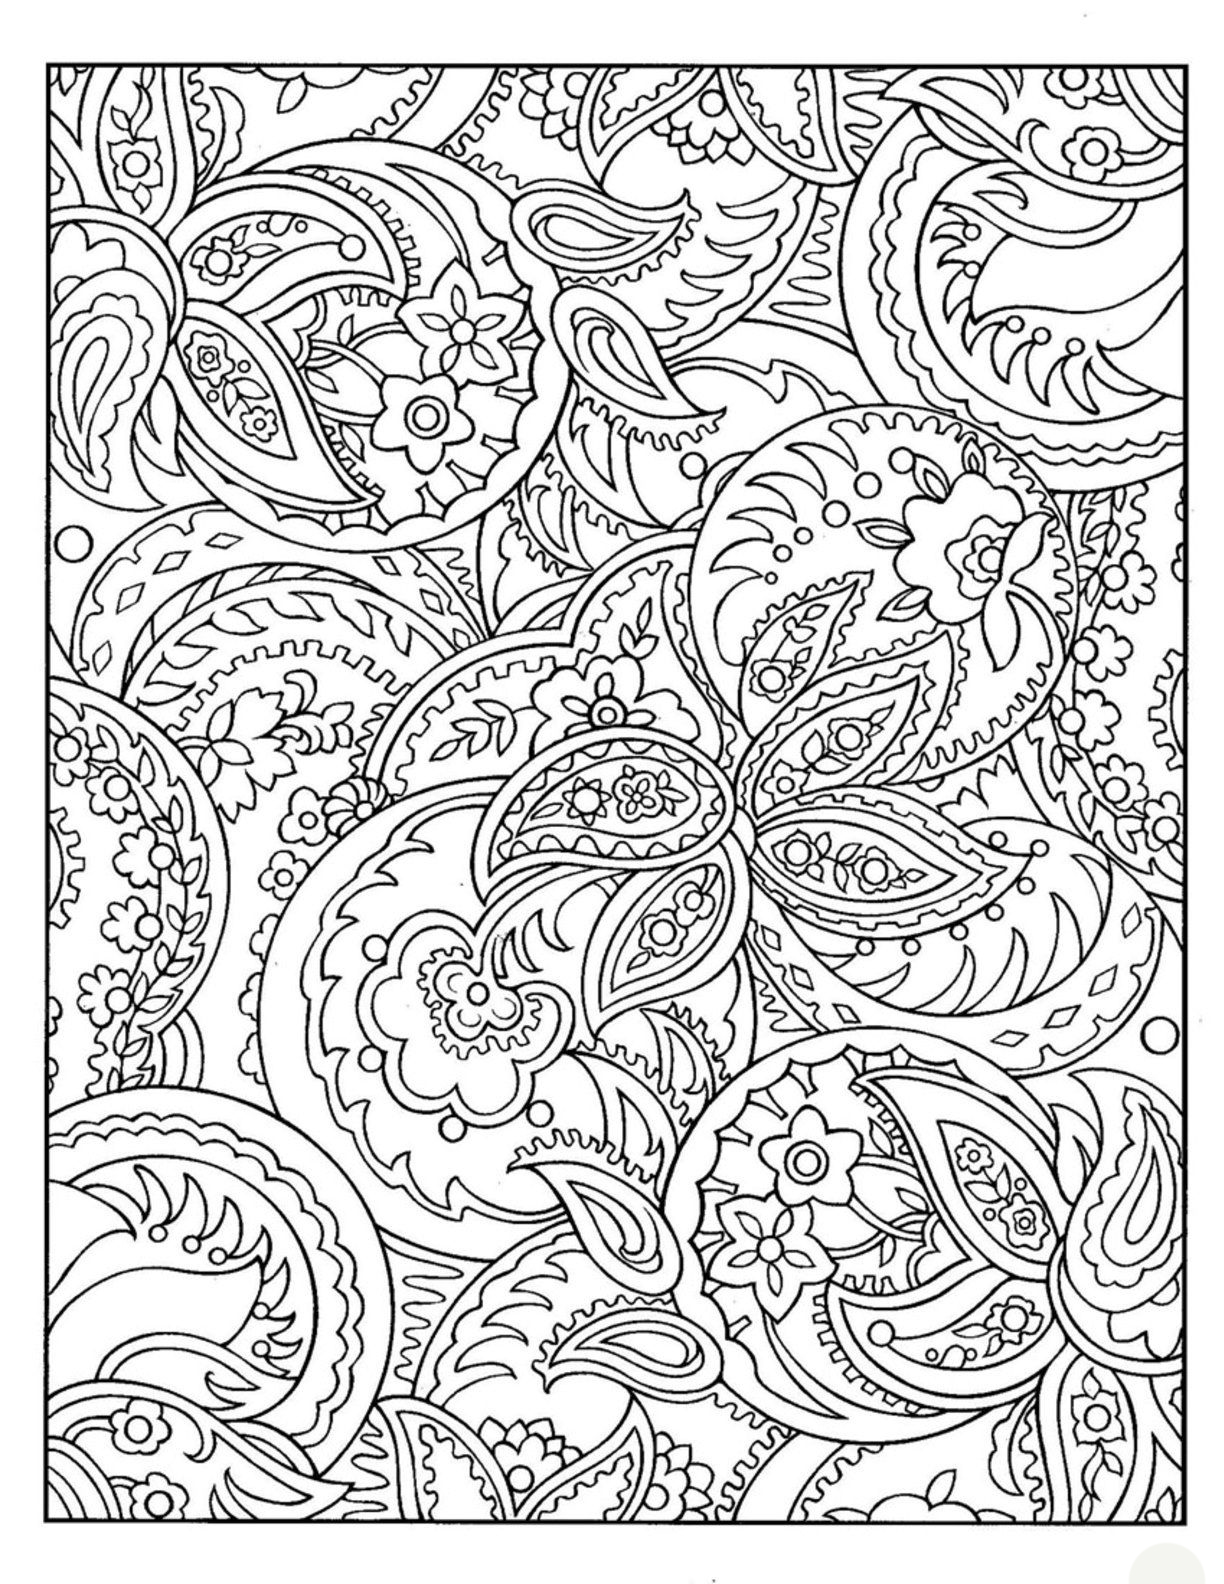 pattern coloring books pattern coloring pages best coloring pages for kids coloring books pattern